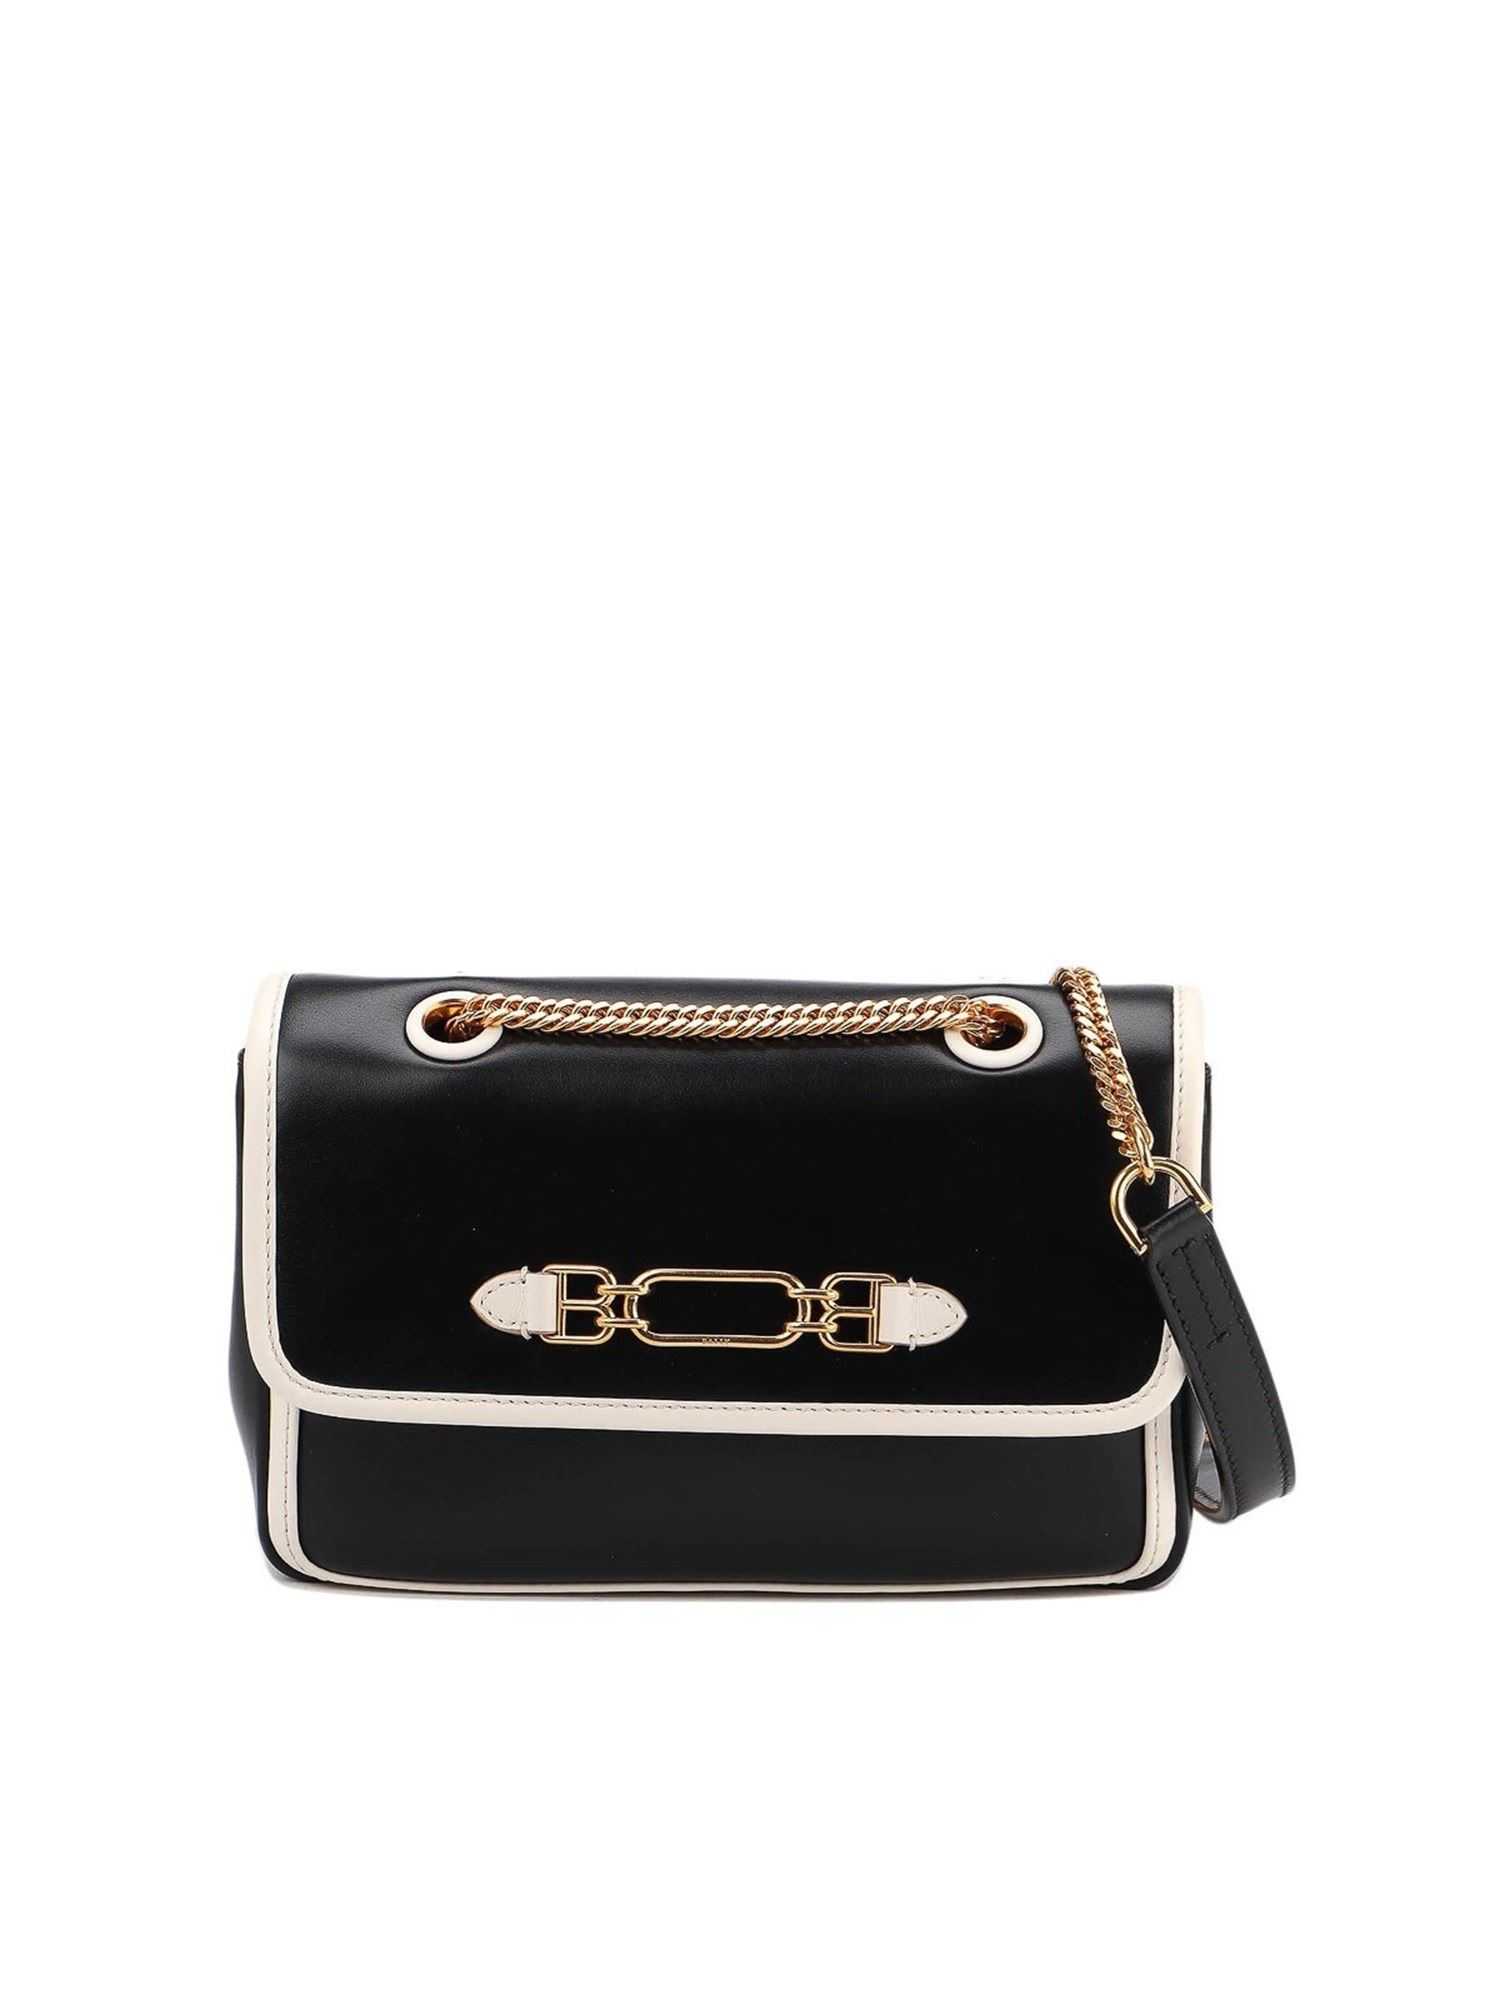 Bally VIVA SMALL SHOULDER BAG IN BLACK